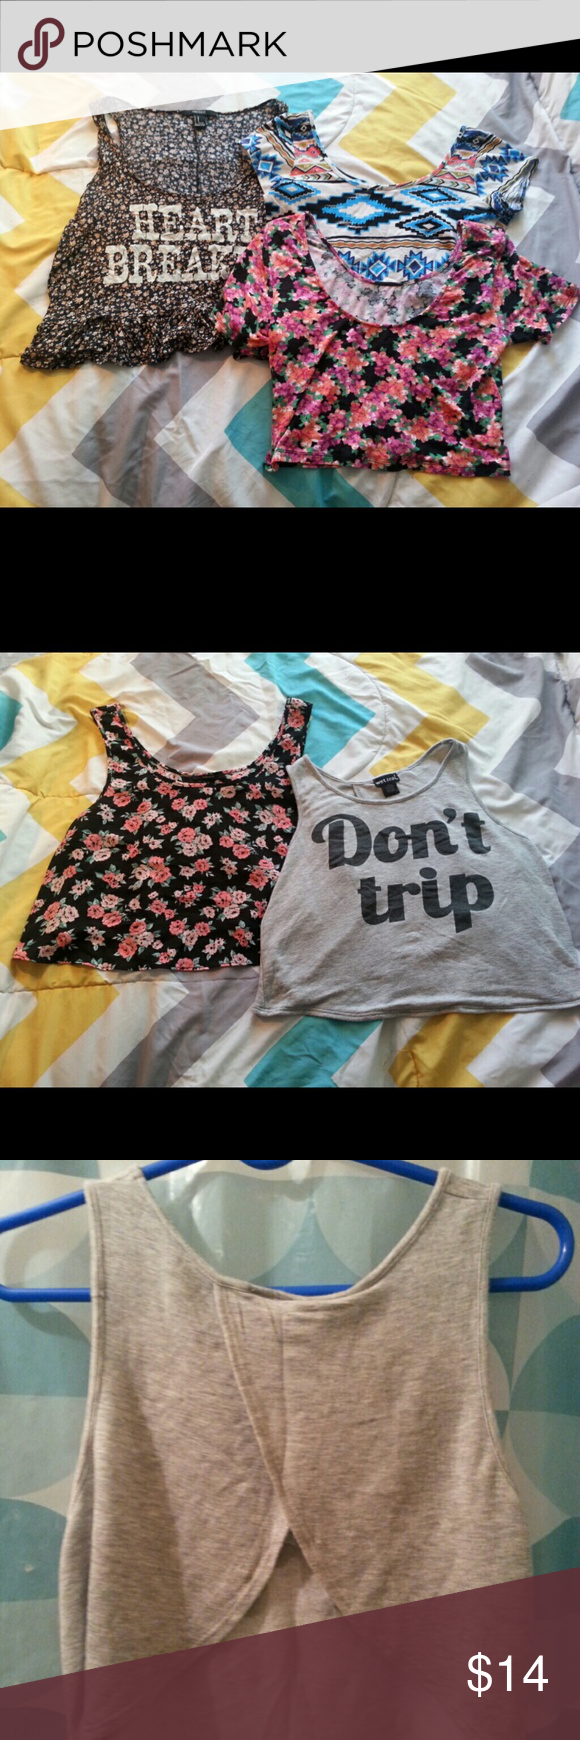 65f15665cd77d Last Chance 2 Buy 🌟🌟 Heartbreaker Top from Forever 21 (size M ...